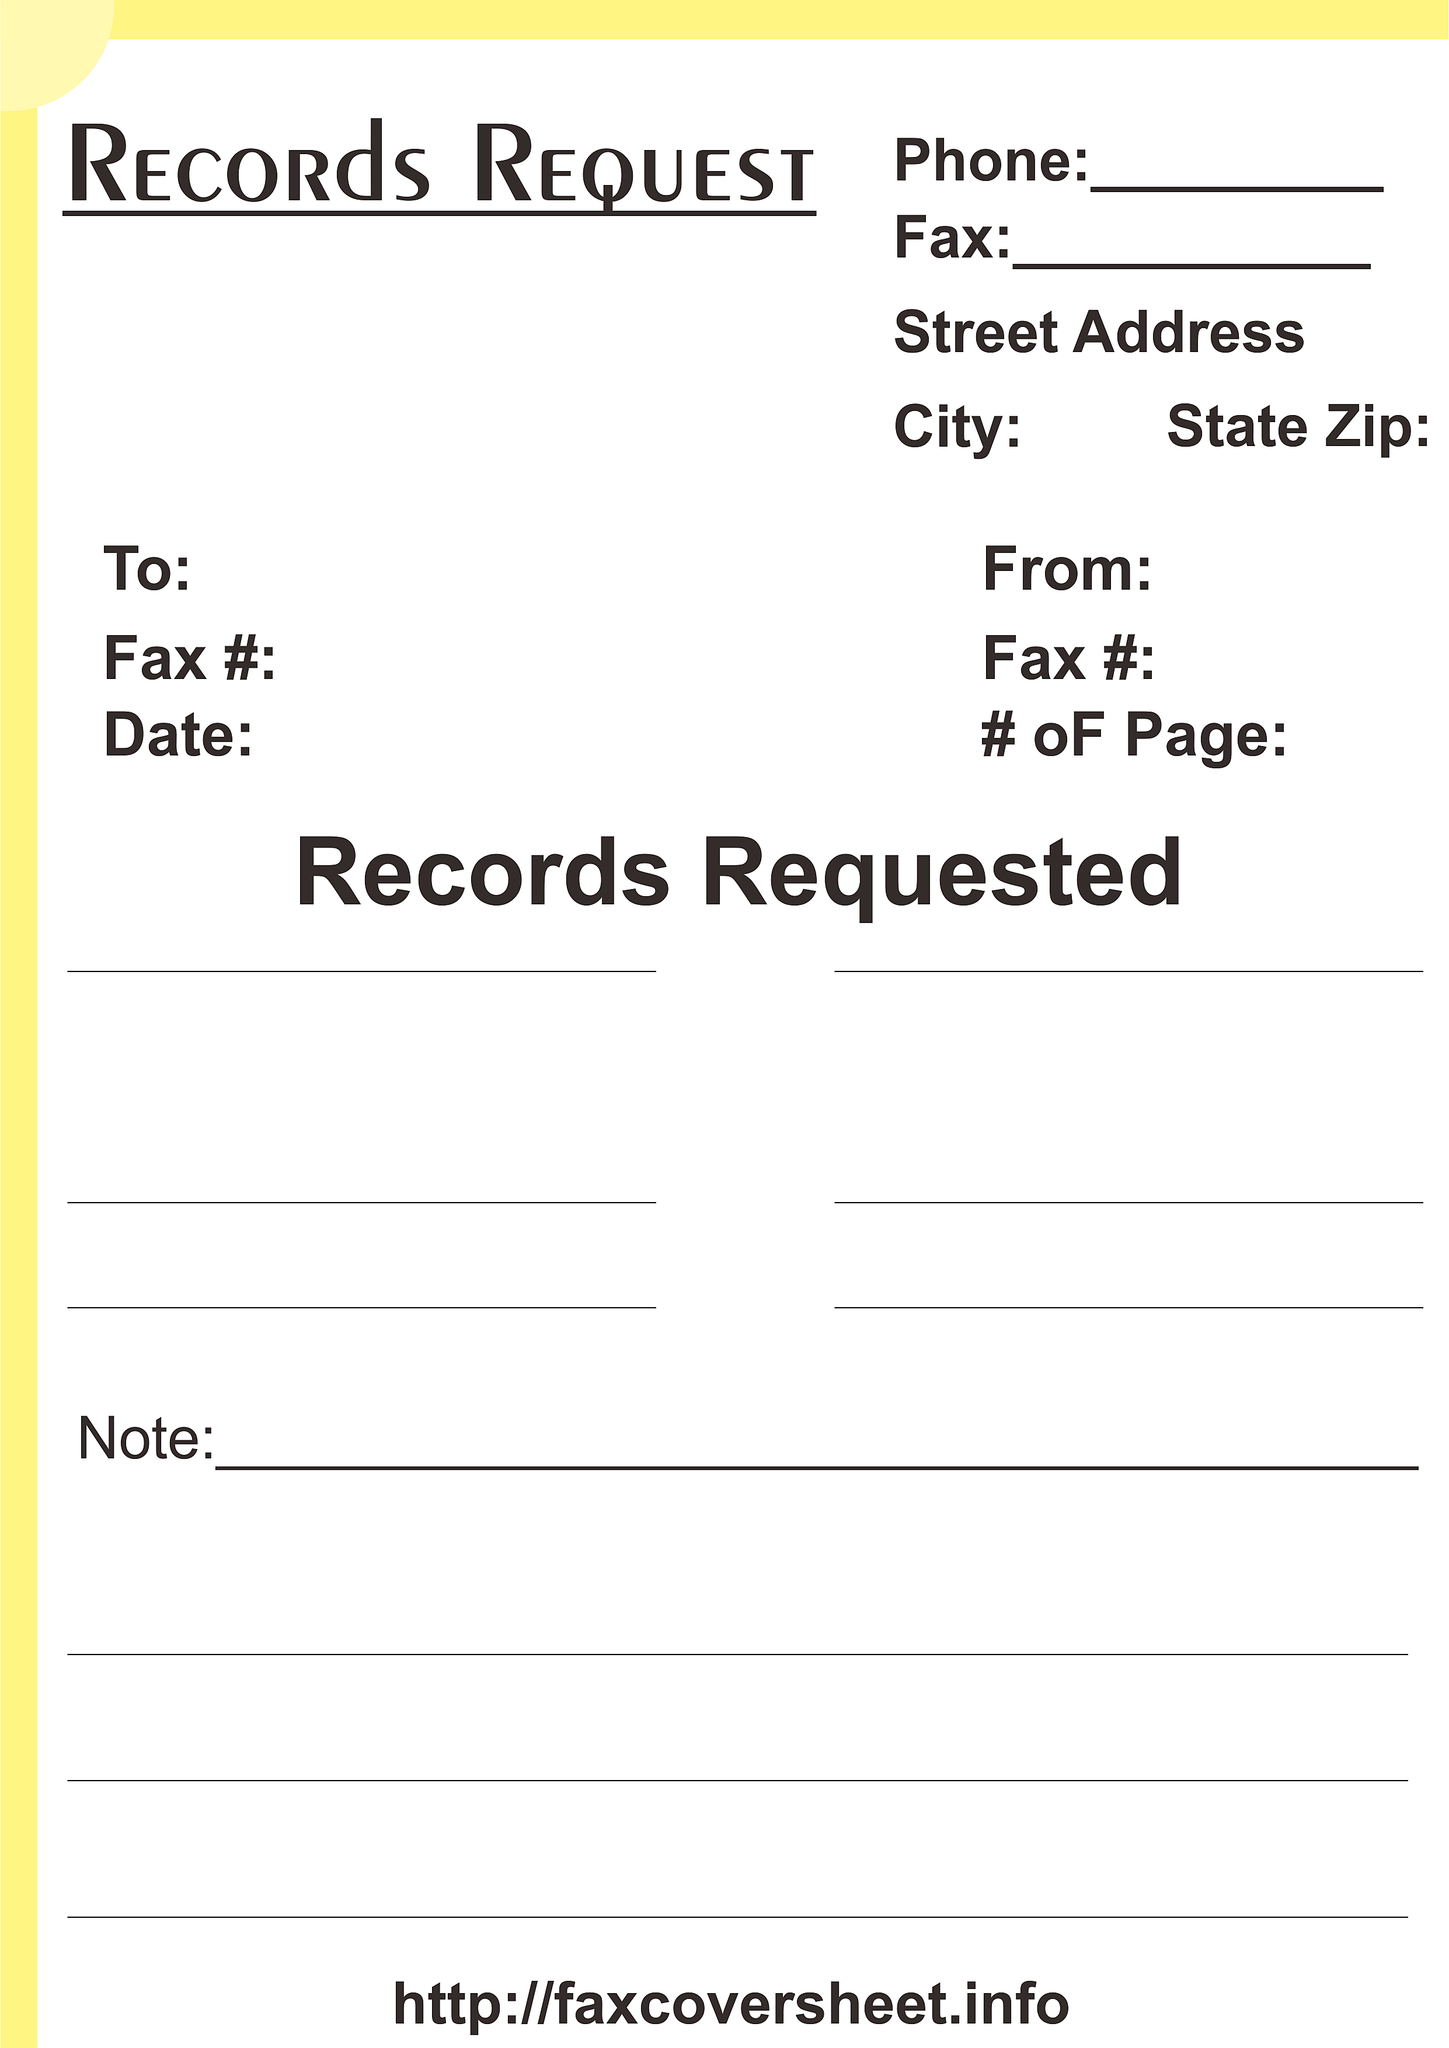 Record Request Fax Cover Sheet